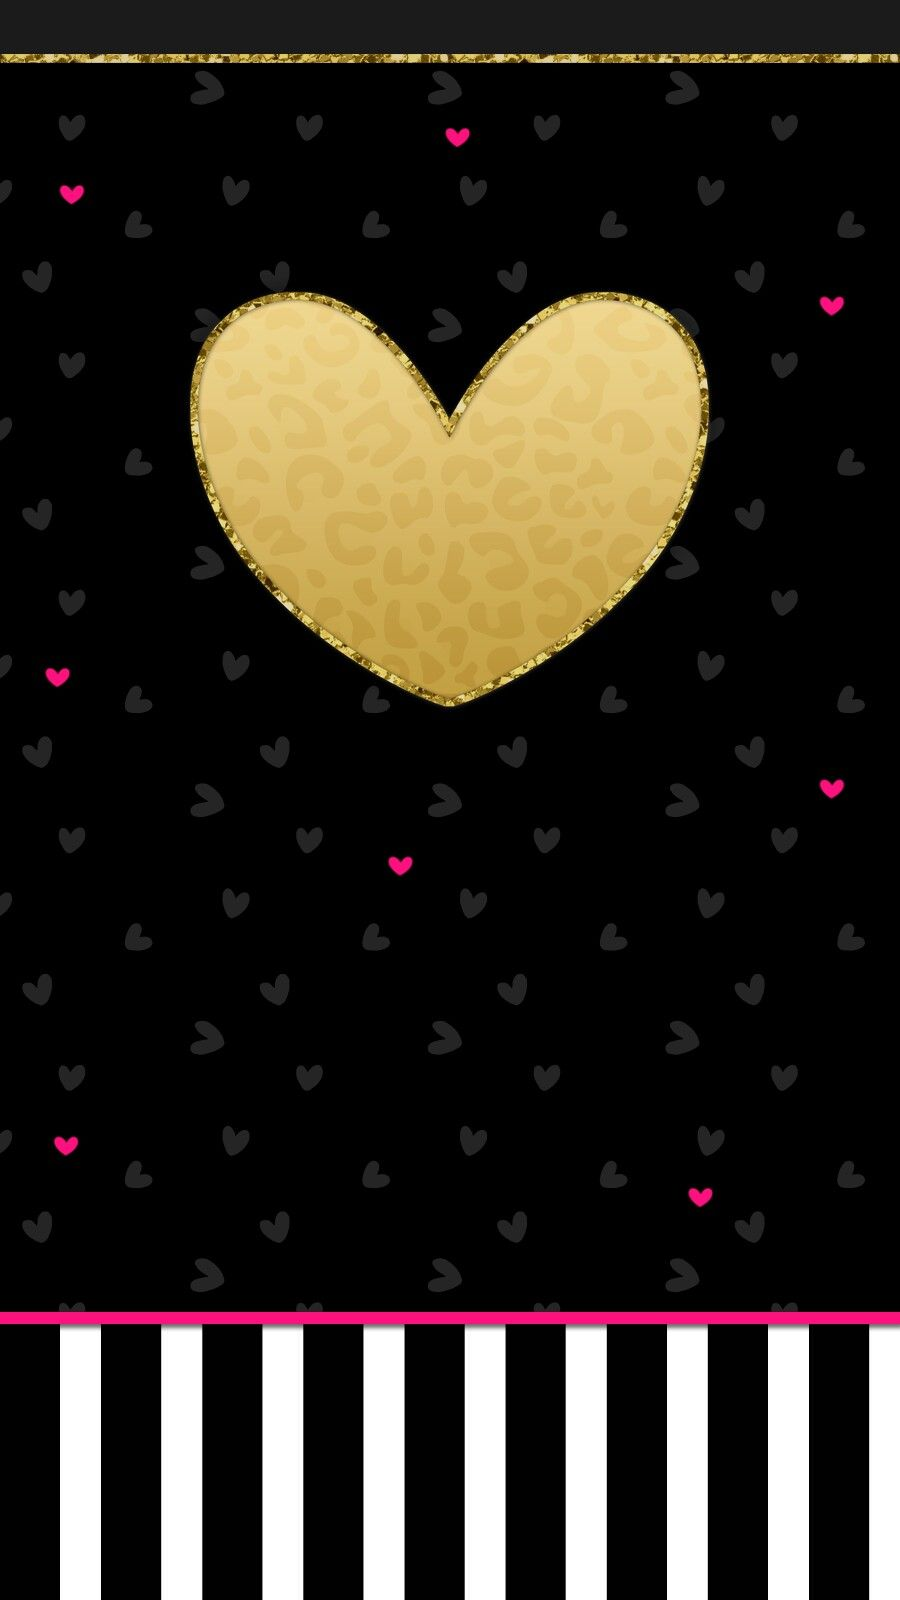 valentine's_day #black #gold #pink #love #heart #wallpaper #iphone